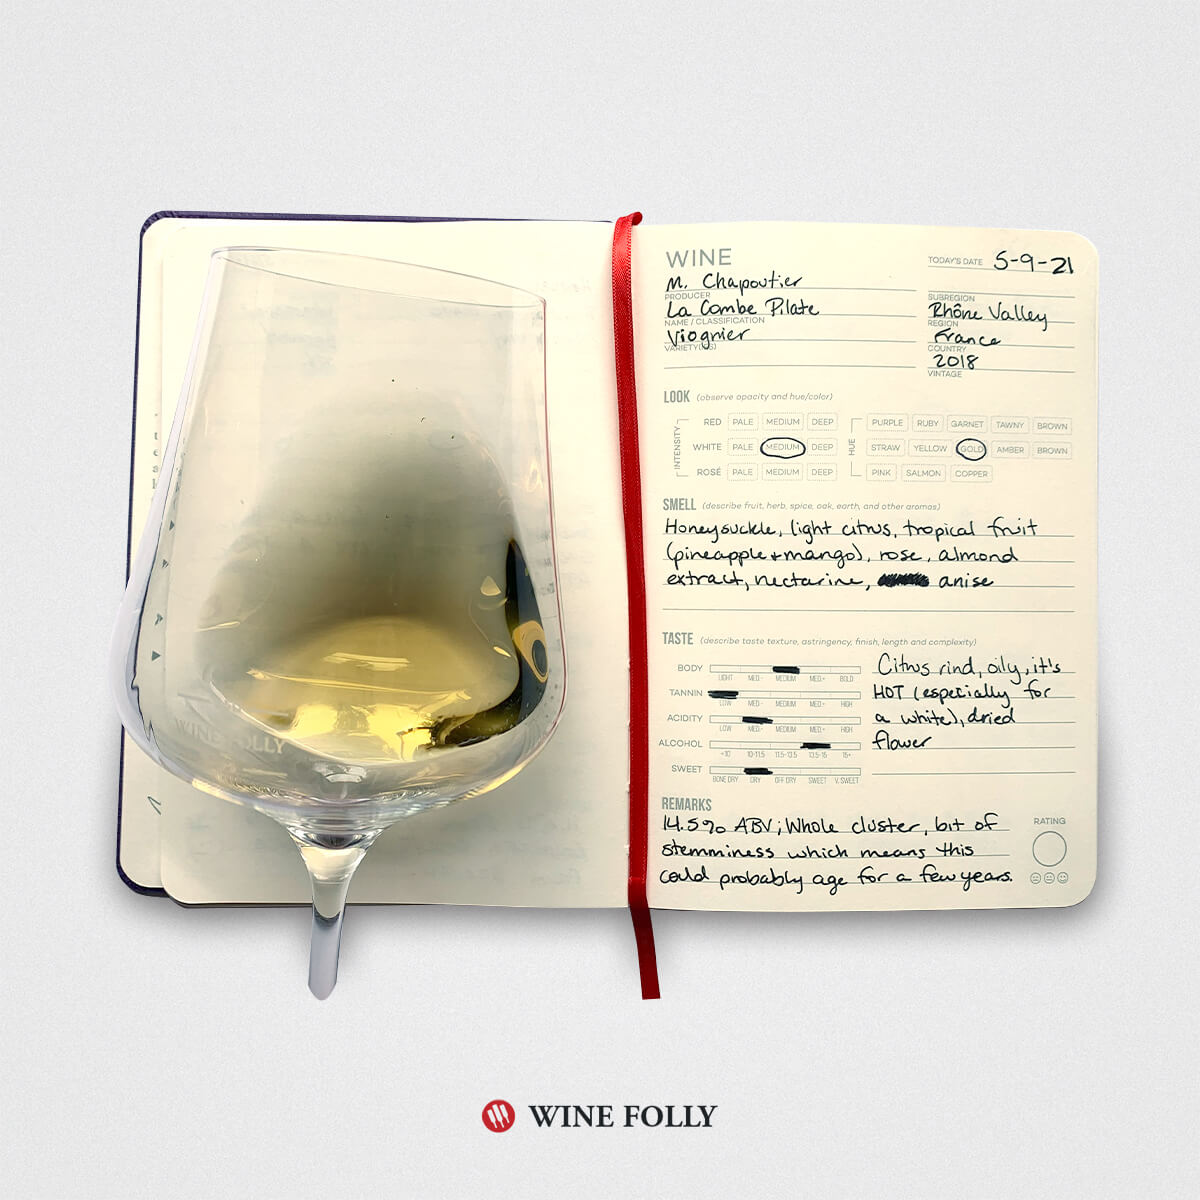 open wine journal with an entry about french viognier